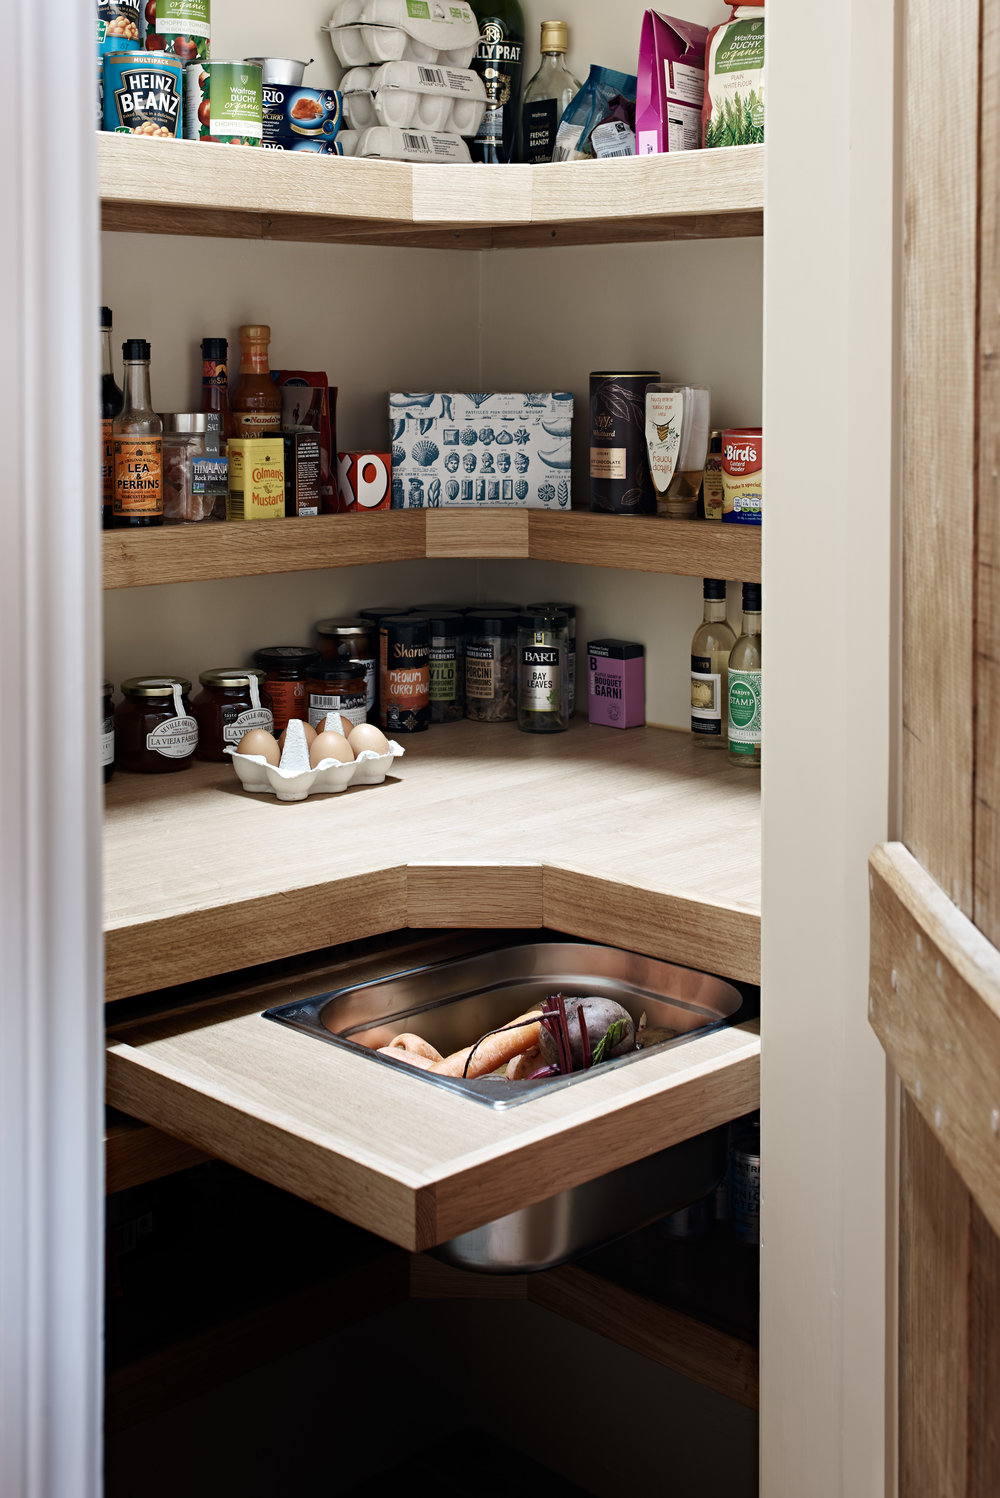 Figura bespoke pantry design. It's neat and tidy….a good indication that a Tomte resides here!